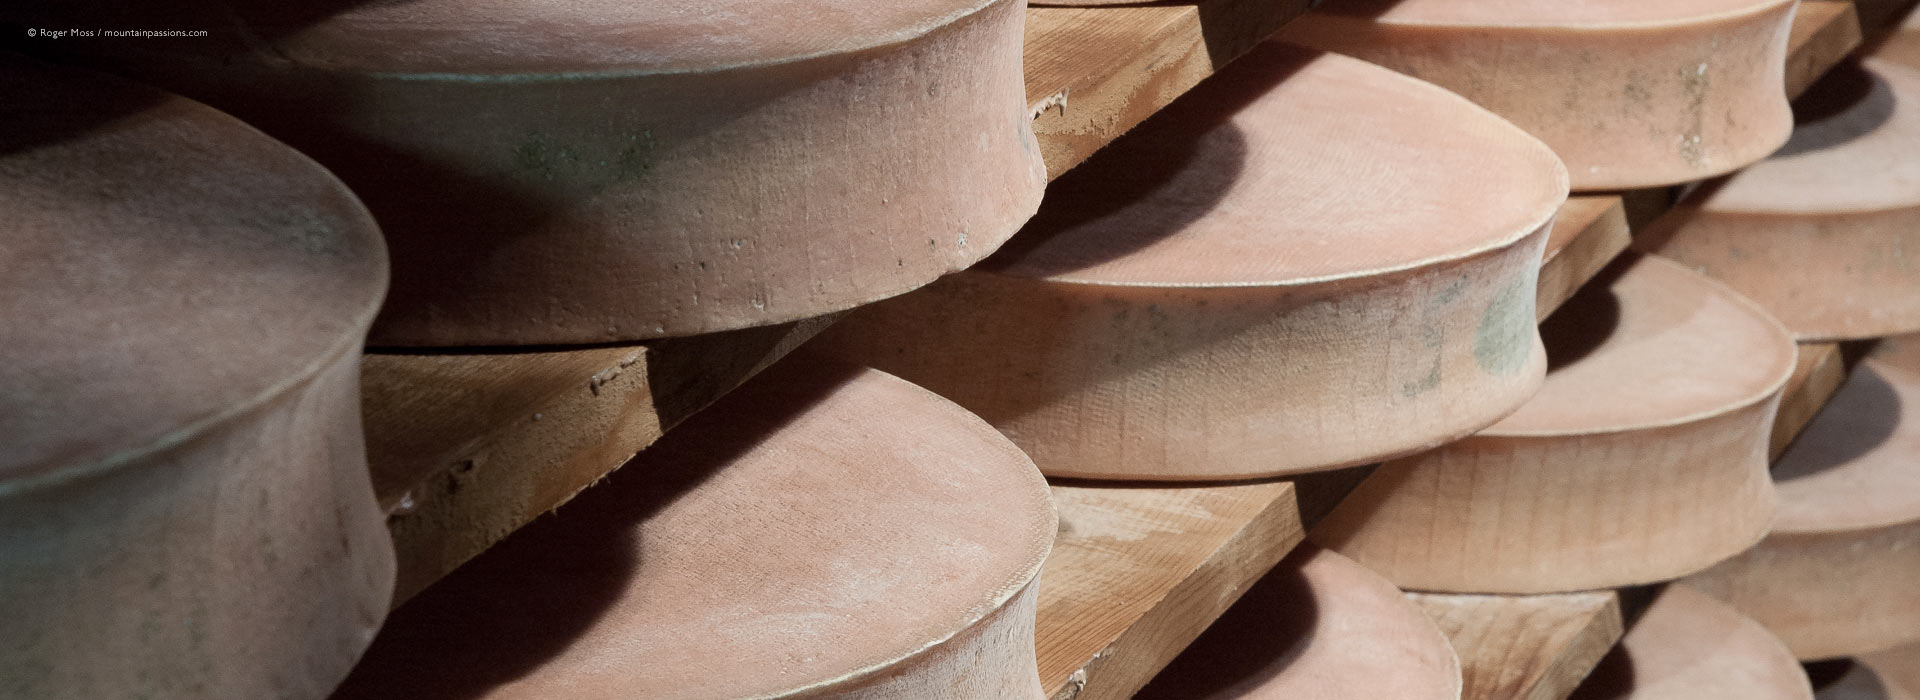 Beaufort cheeses maturing